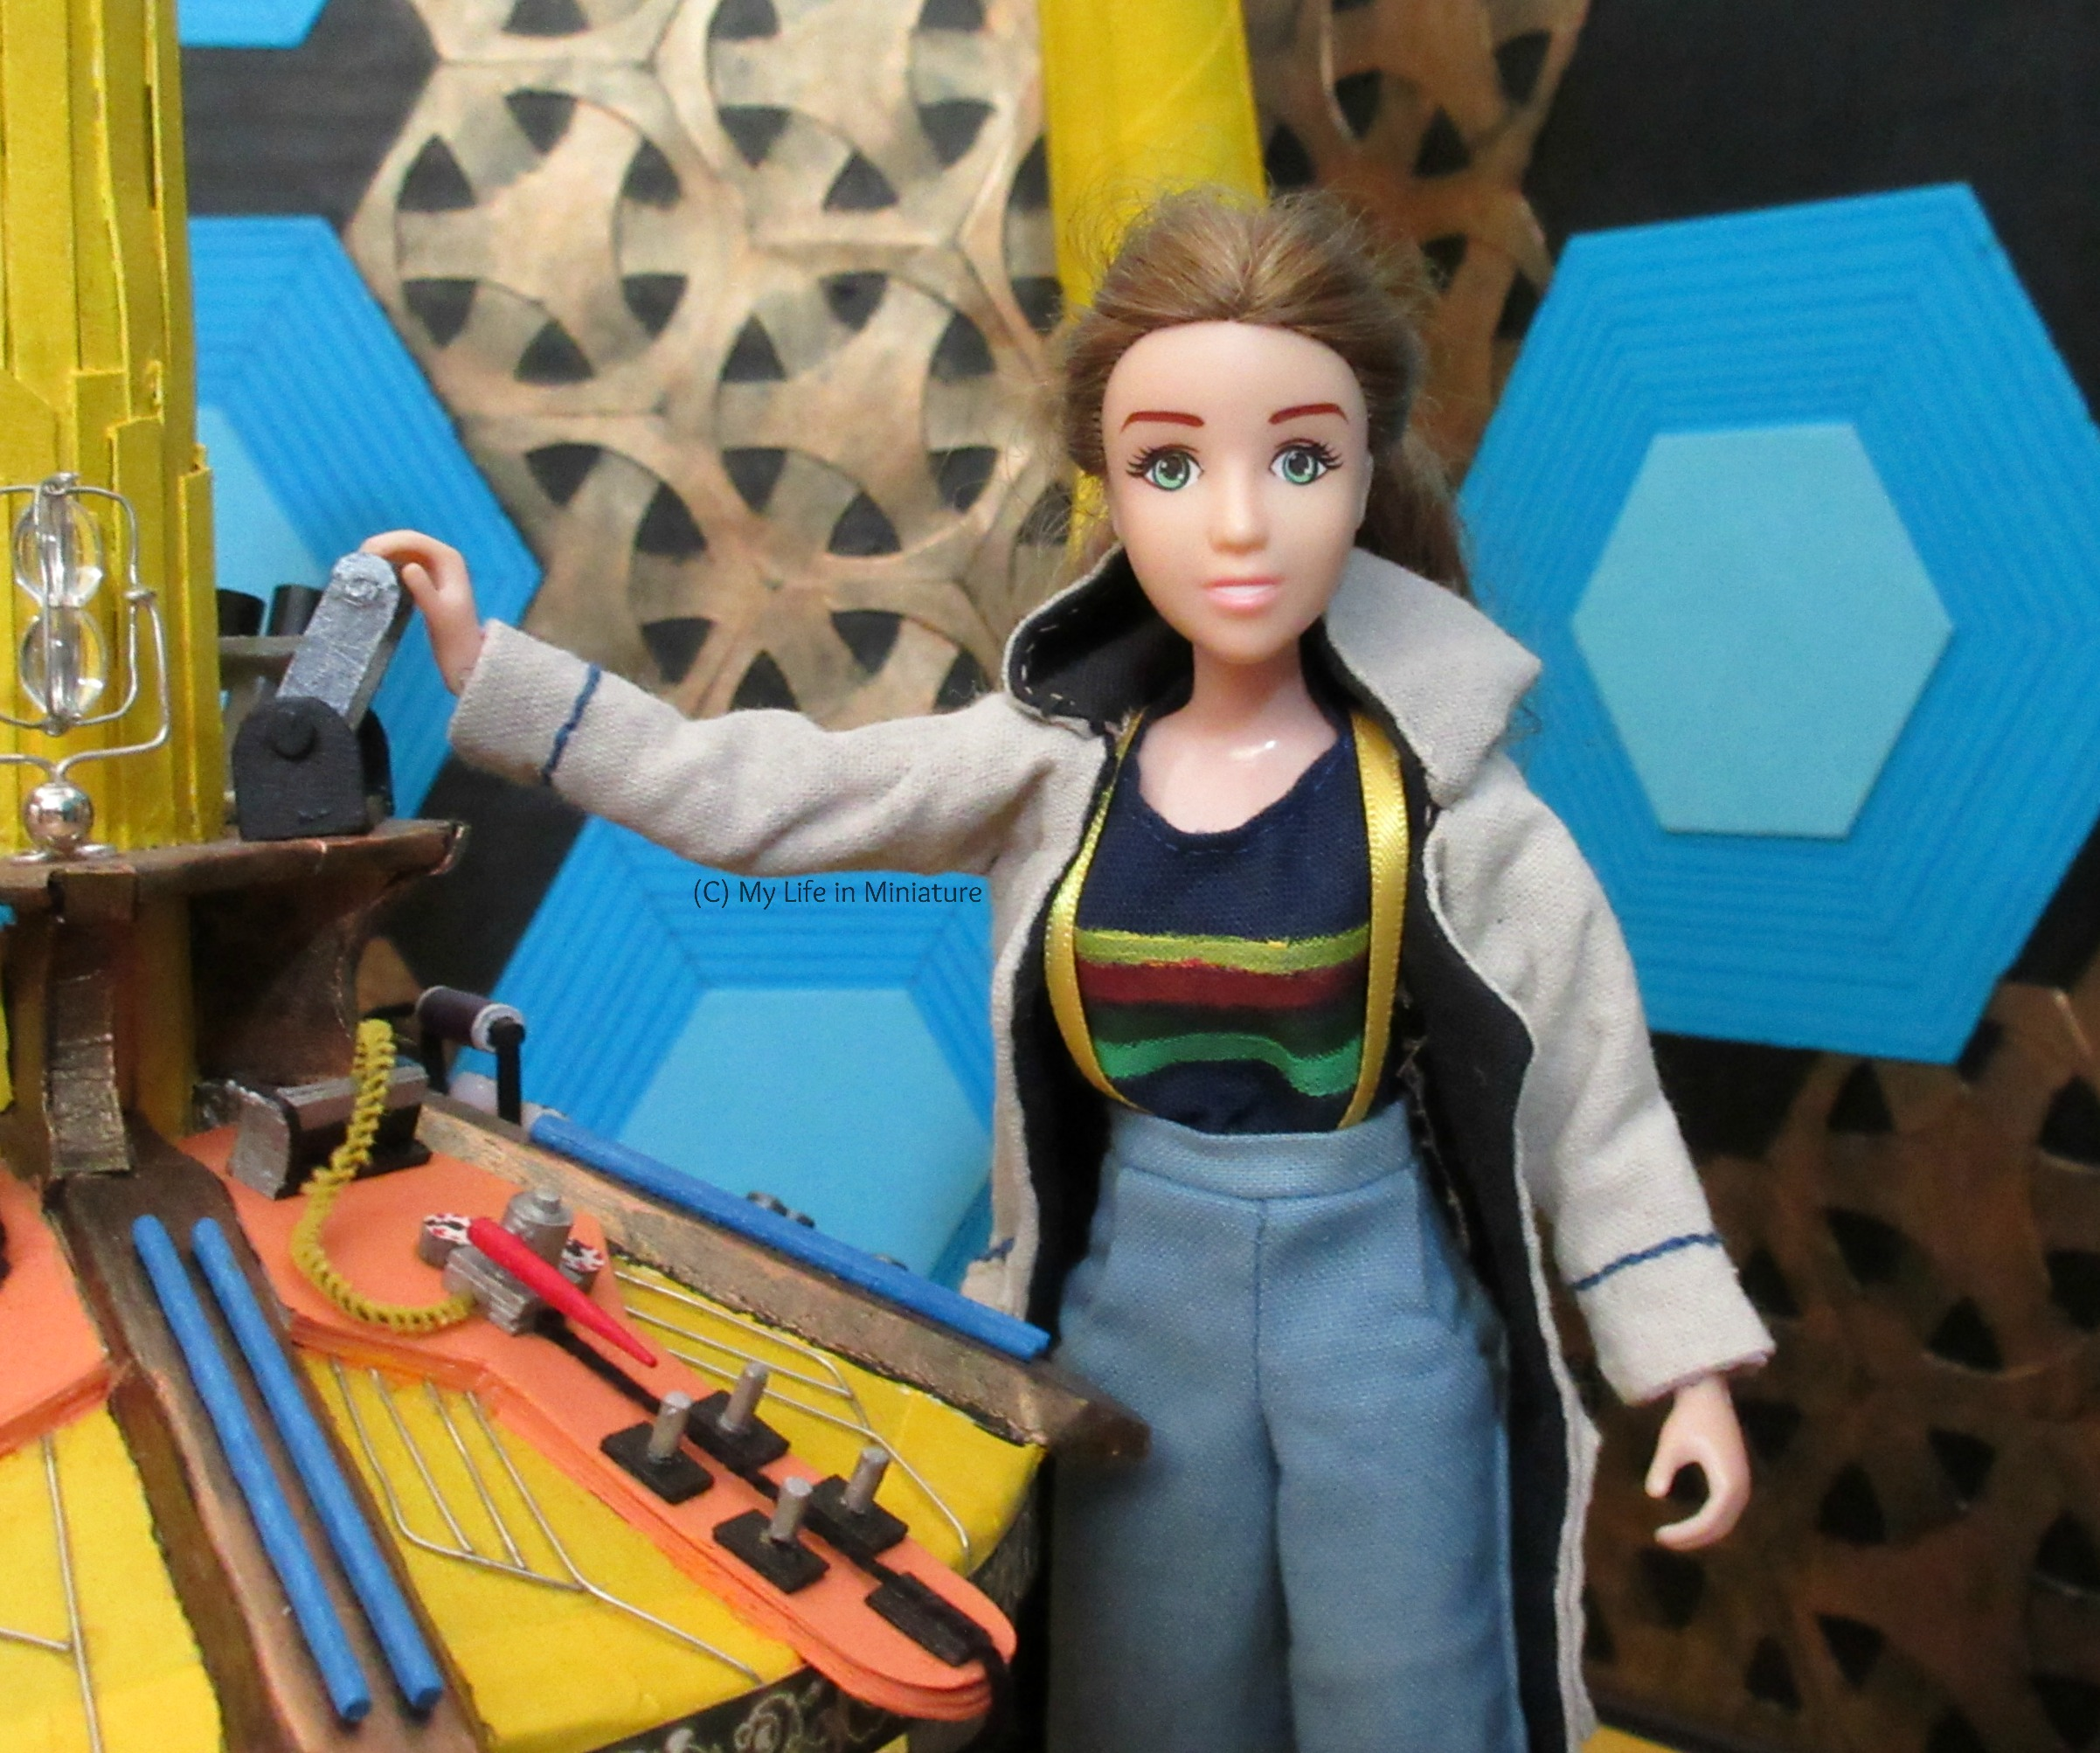 Relative close-up of Sarah at the central console in Thirteenth Doctor cosplay. Her hand is on the dematerialising lever, and she smiles eagerly at the camera.